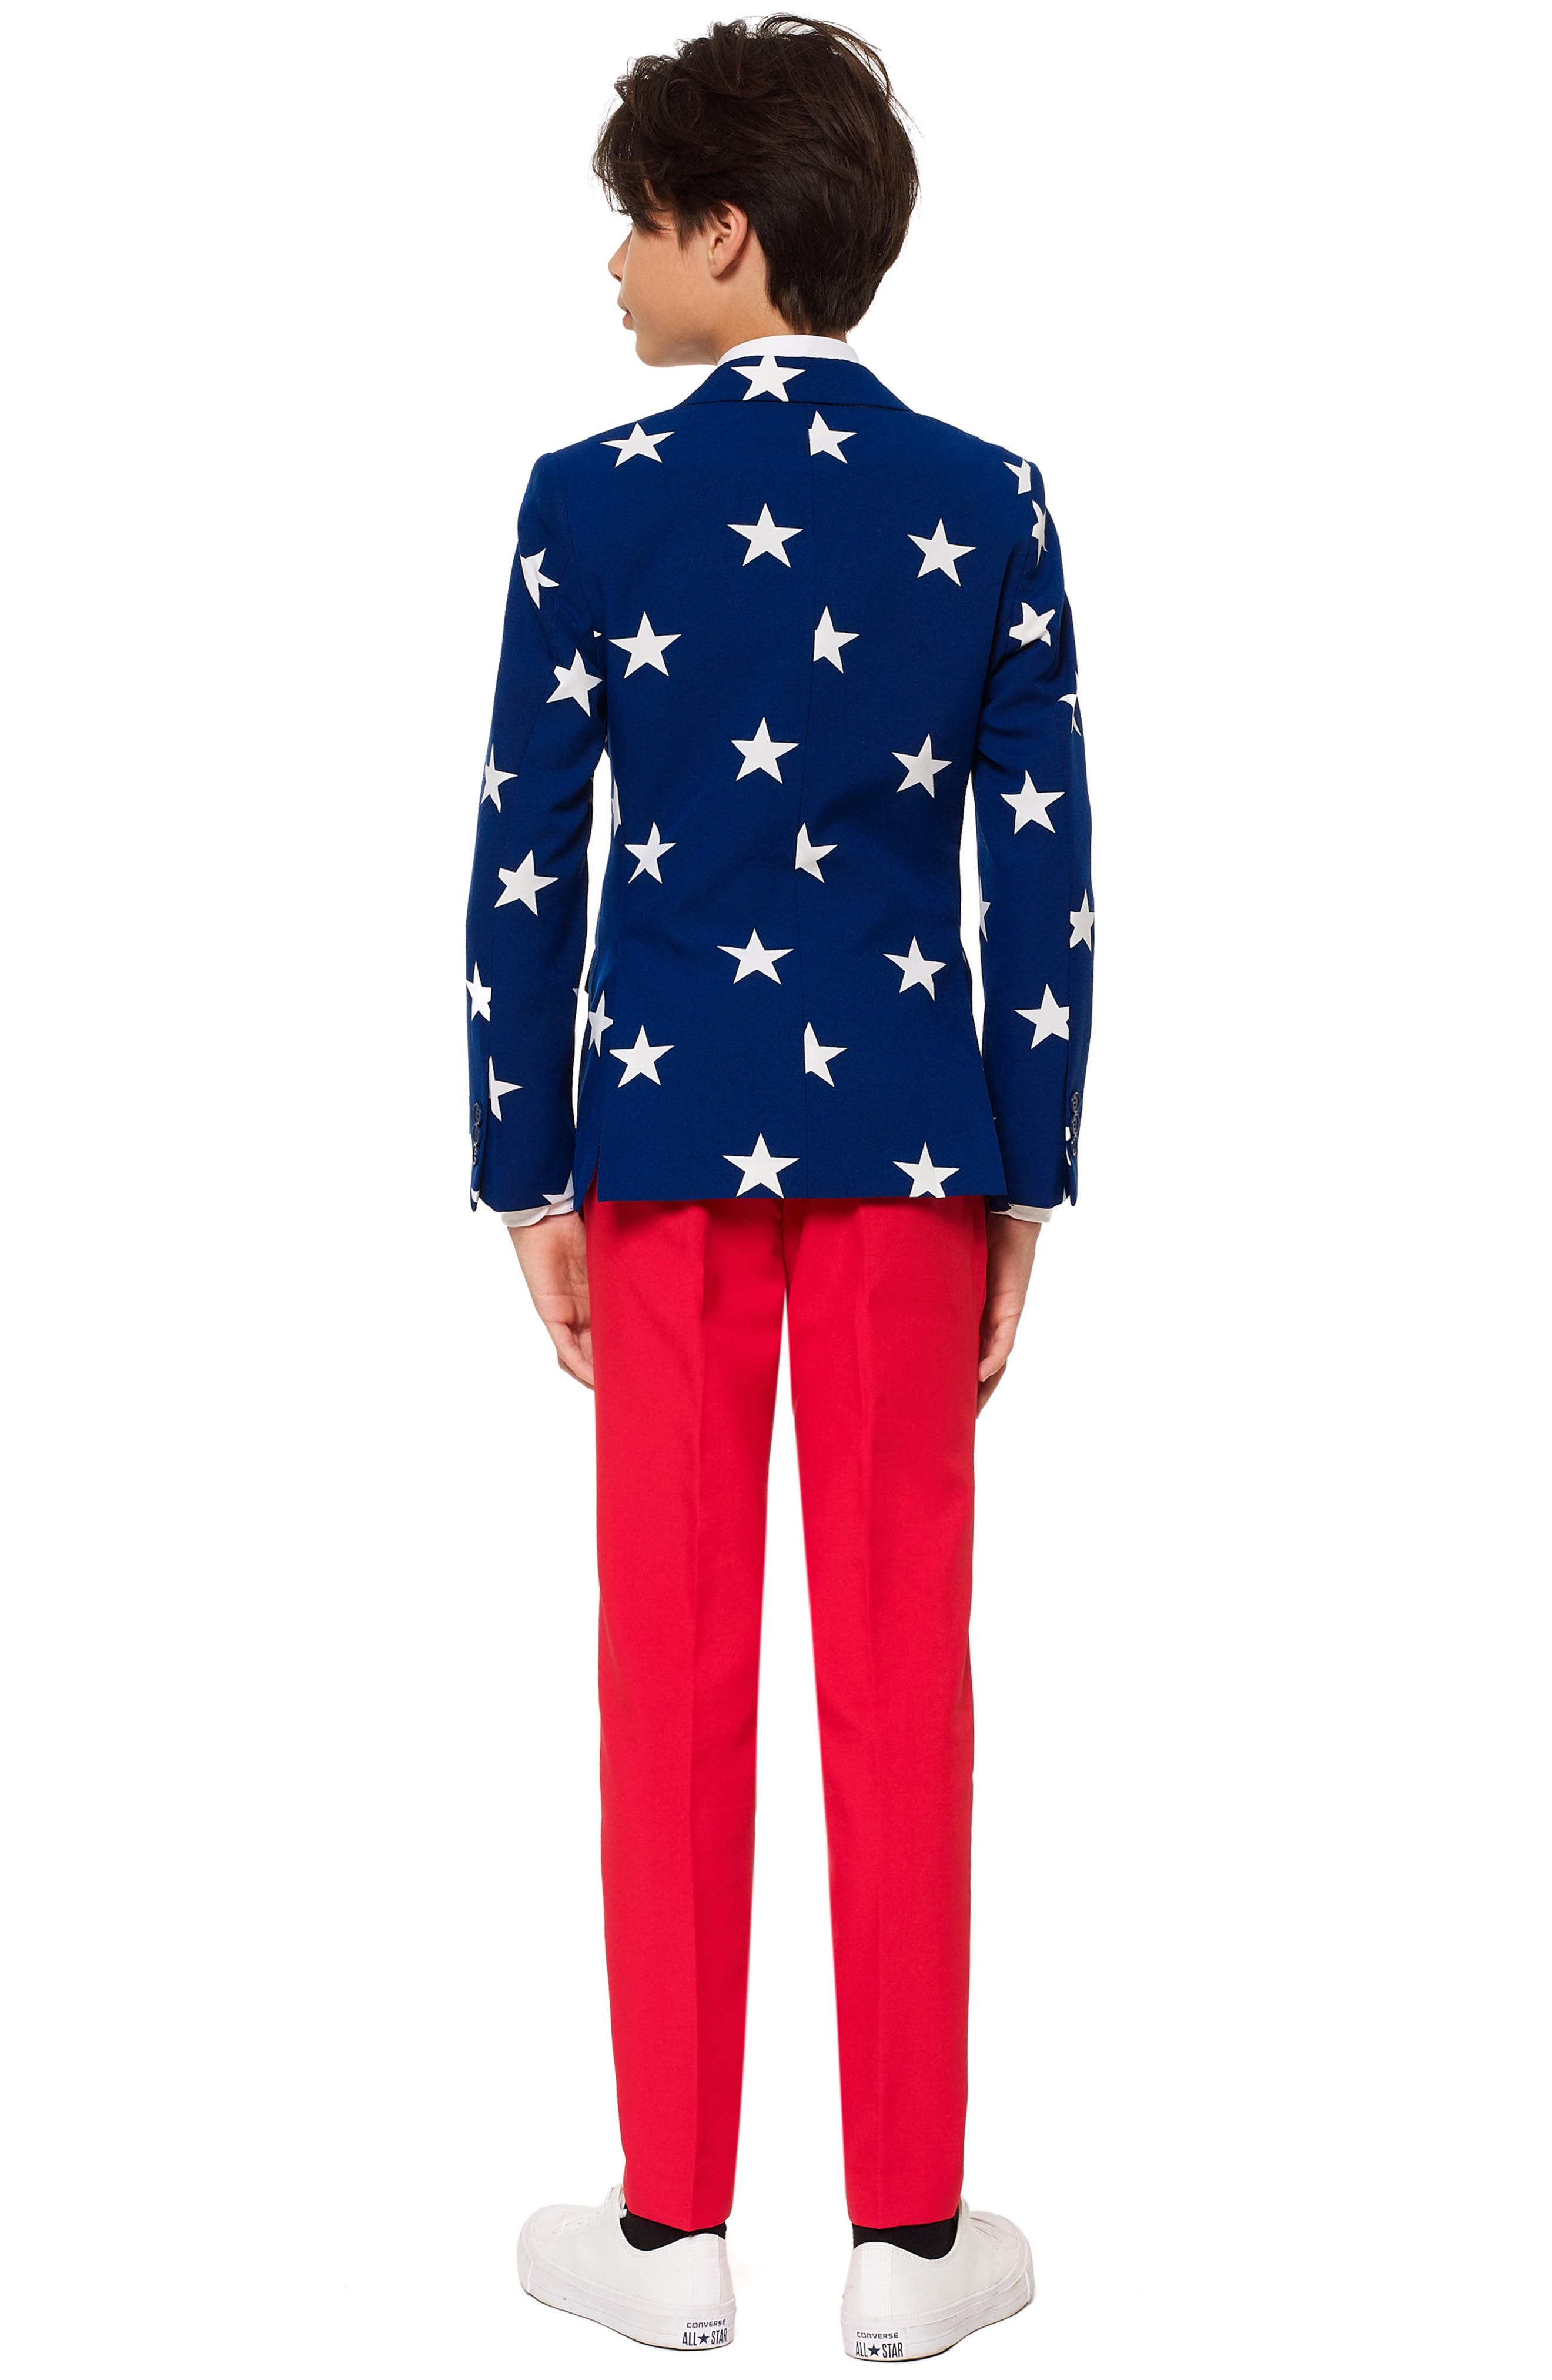 Stars & Stripes Two-Piece Suit with Tie,                             Alternate thumbnail 2, color,                             BLUE/ WHITE